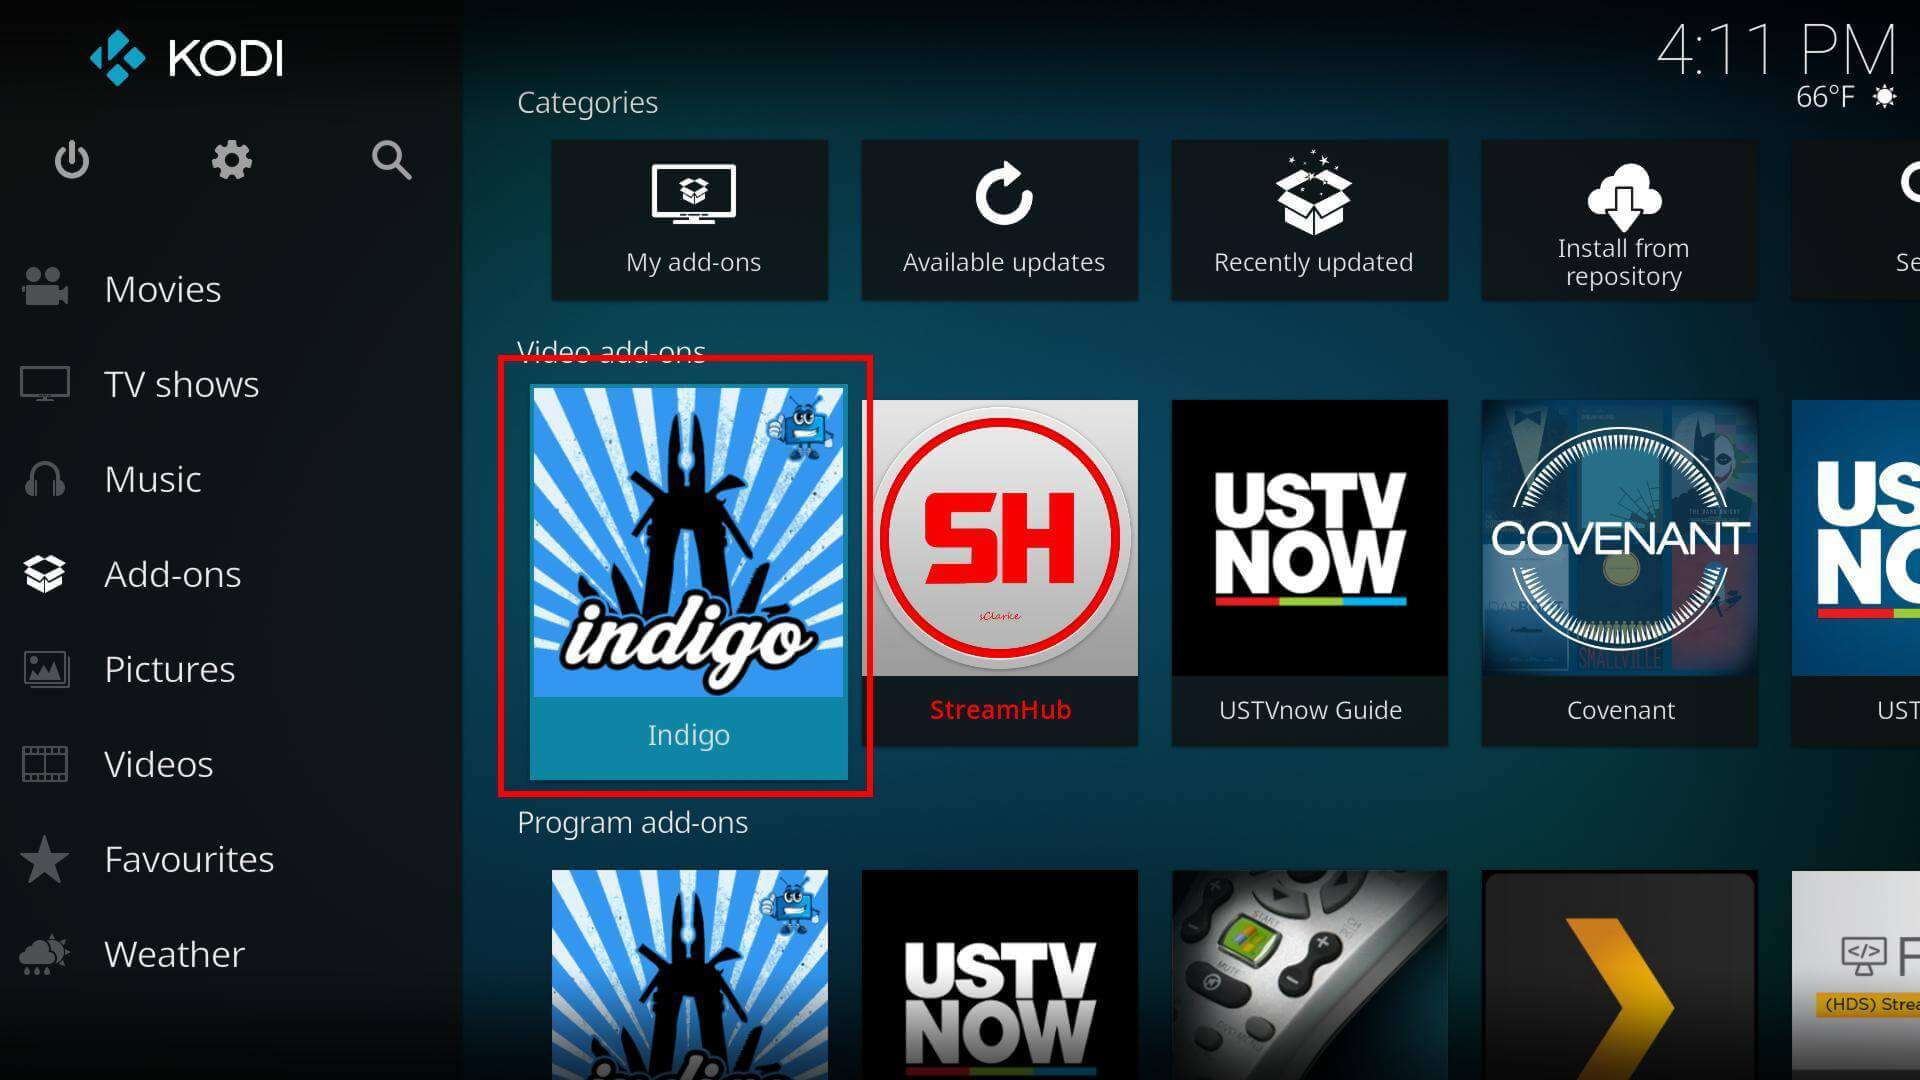 Clone Kodi devices: Duplicate Kodi setup to other devices in minutes